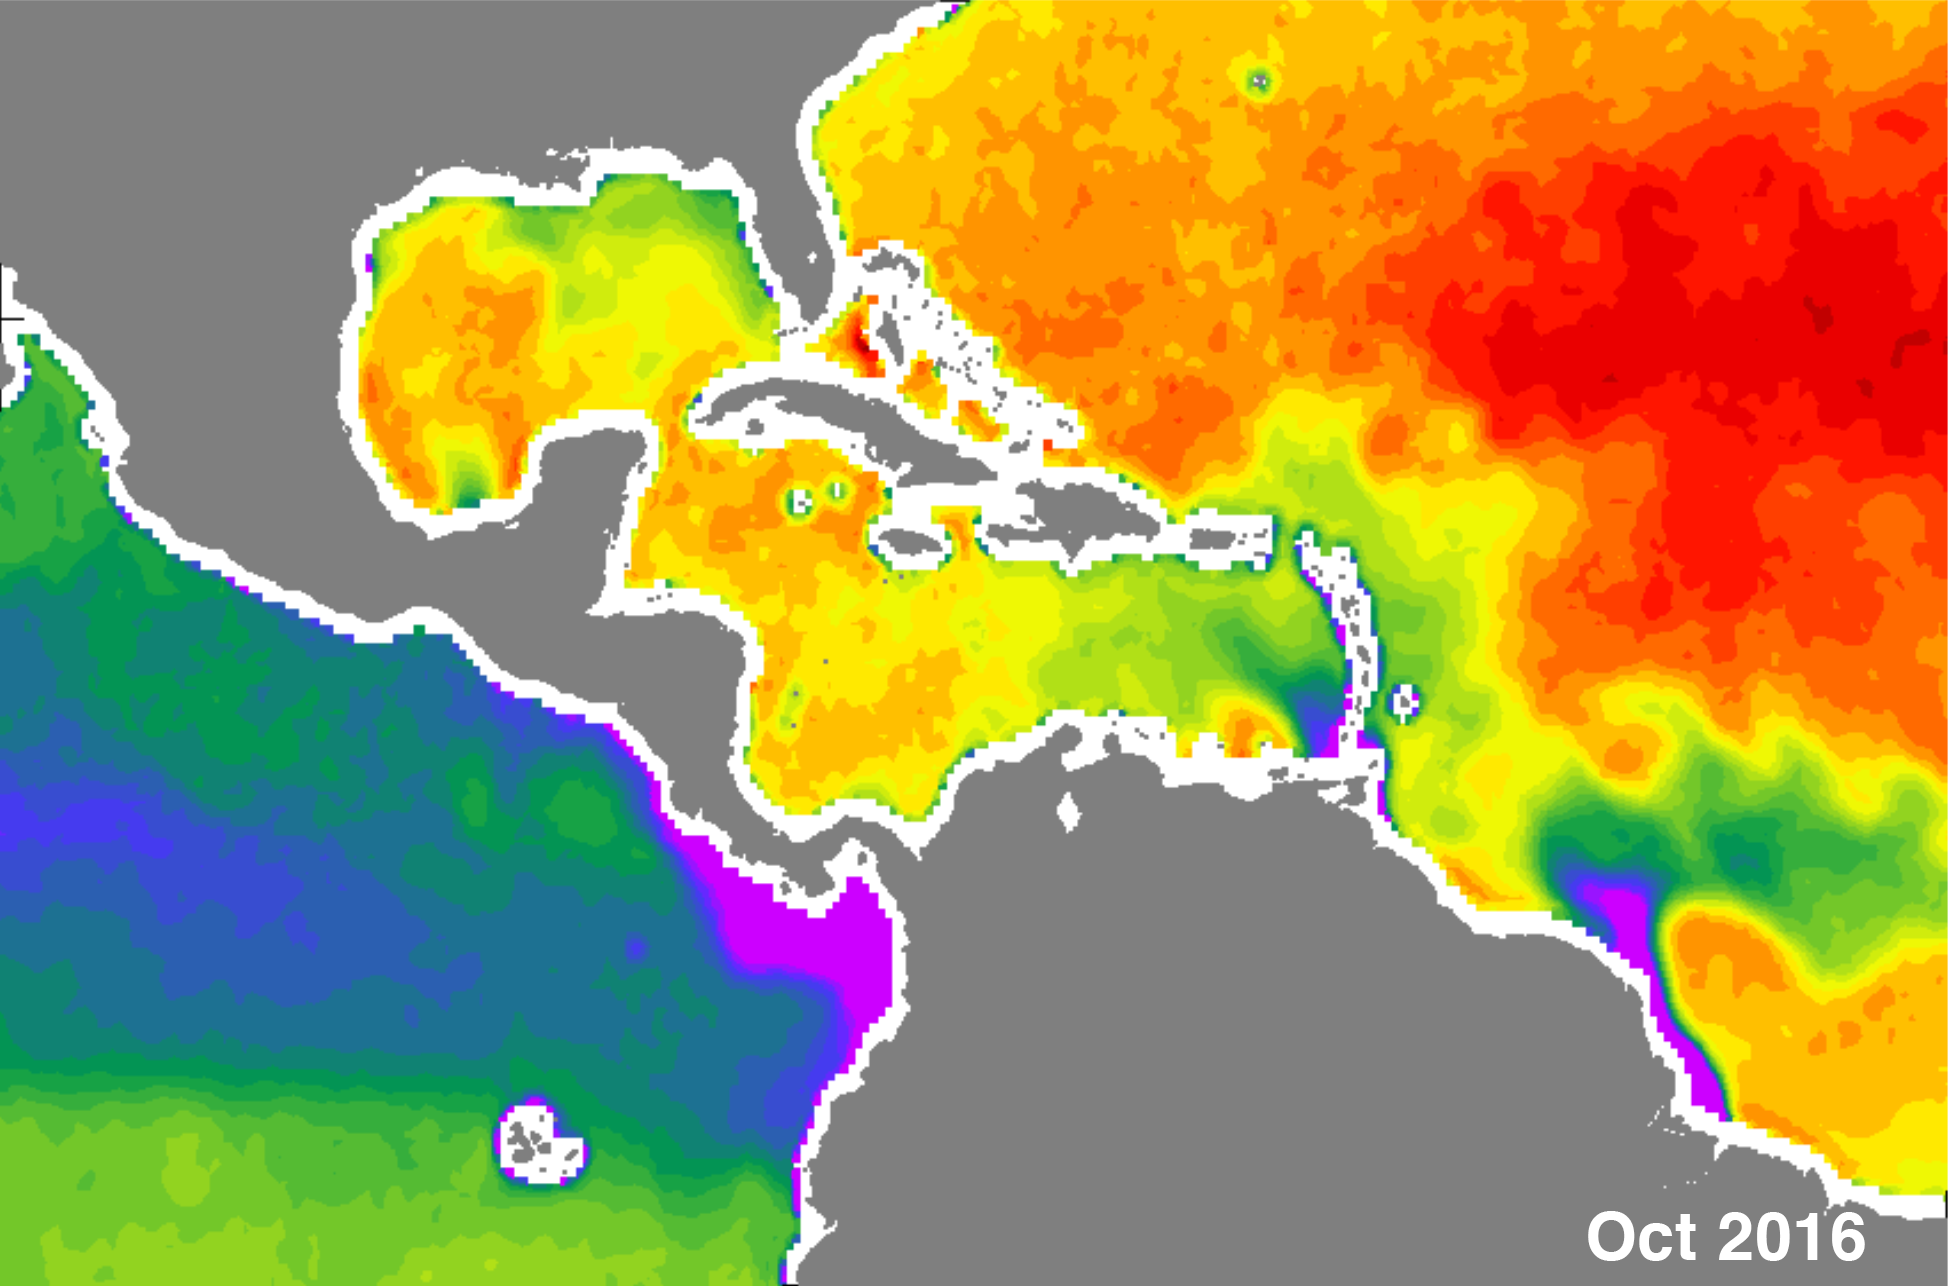 Sea surface salinity in the Gulf of Mexico